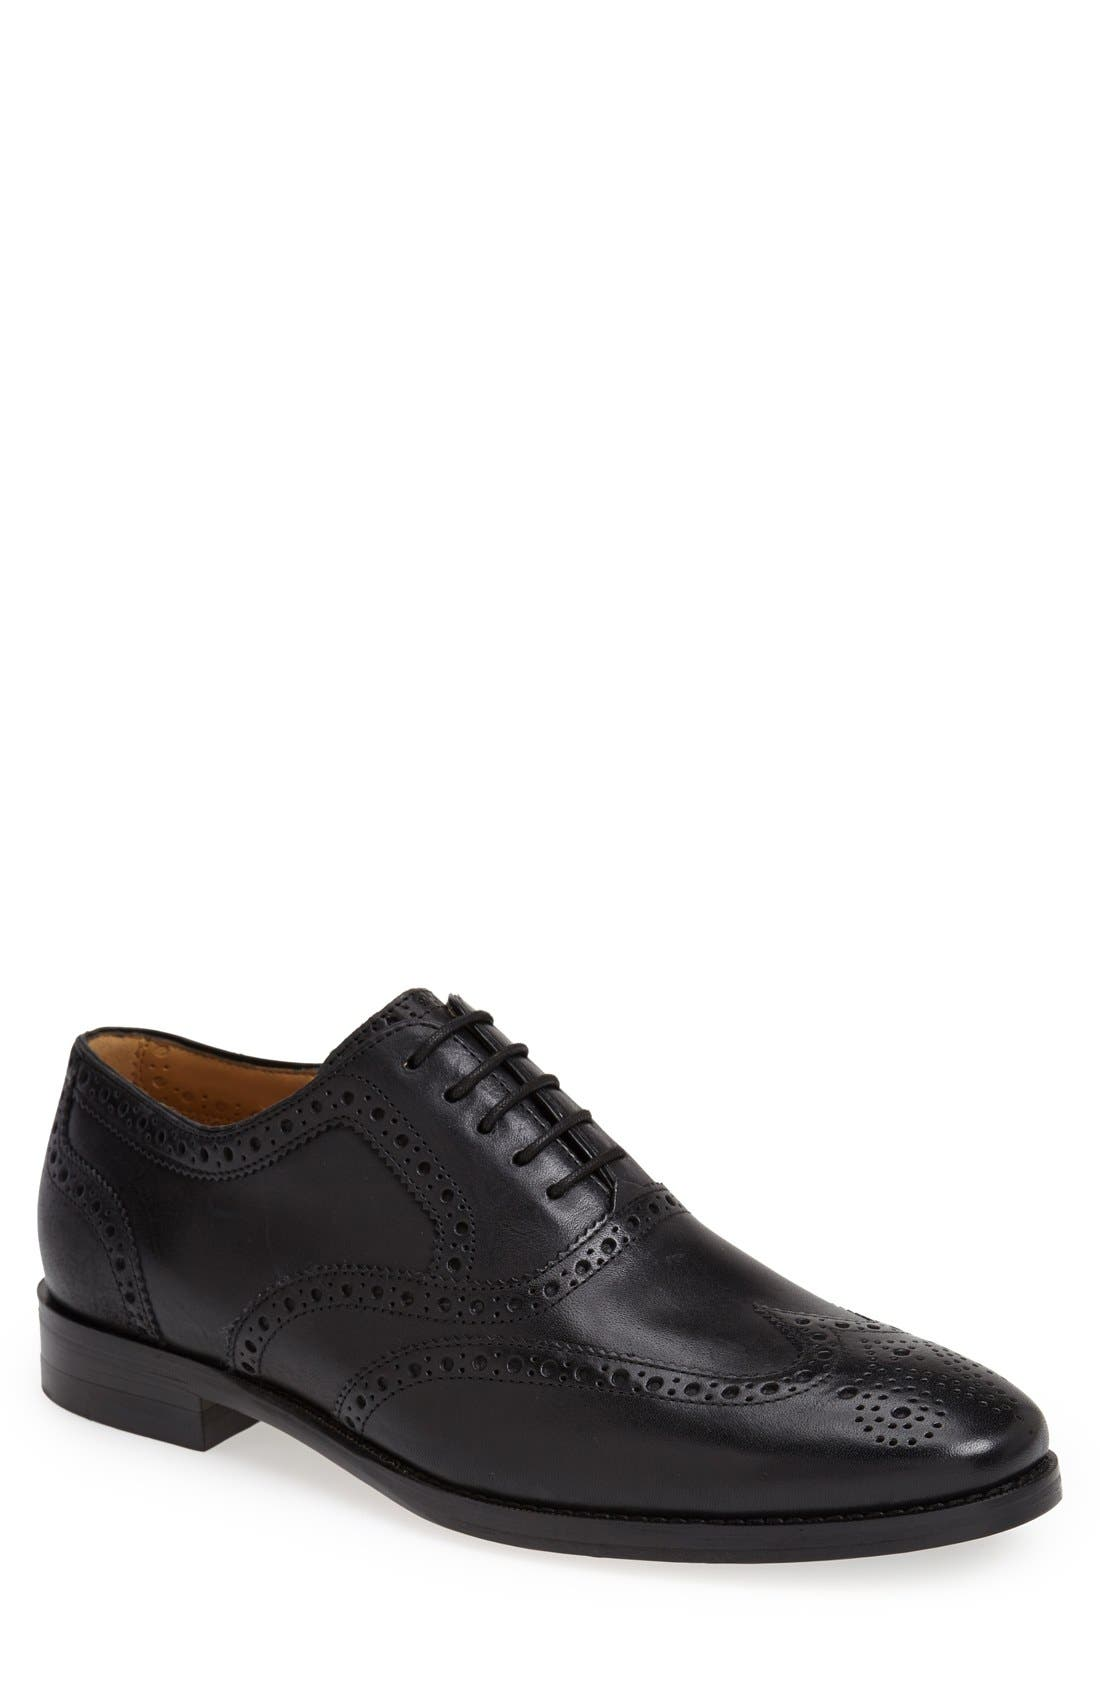 'Cambridge' Wingtip,                             Main thumbnail 1, color,                             BLACK